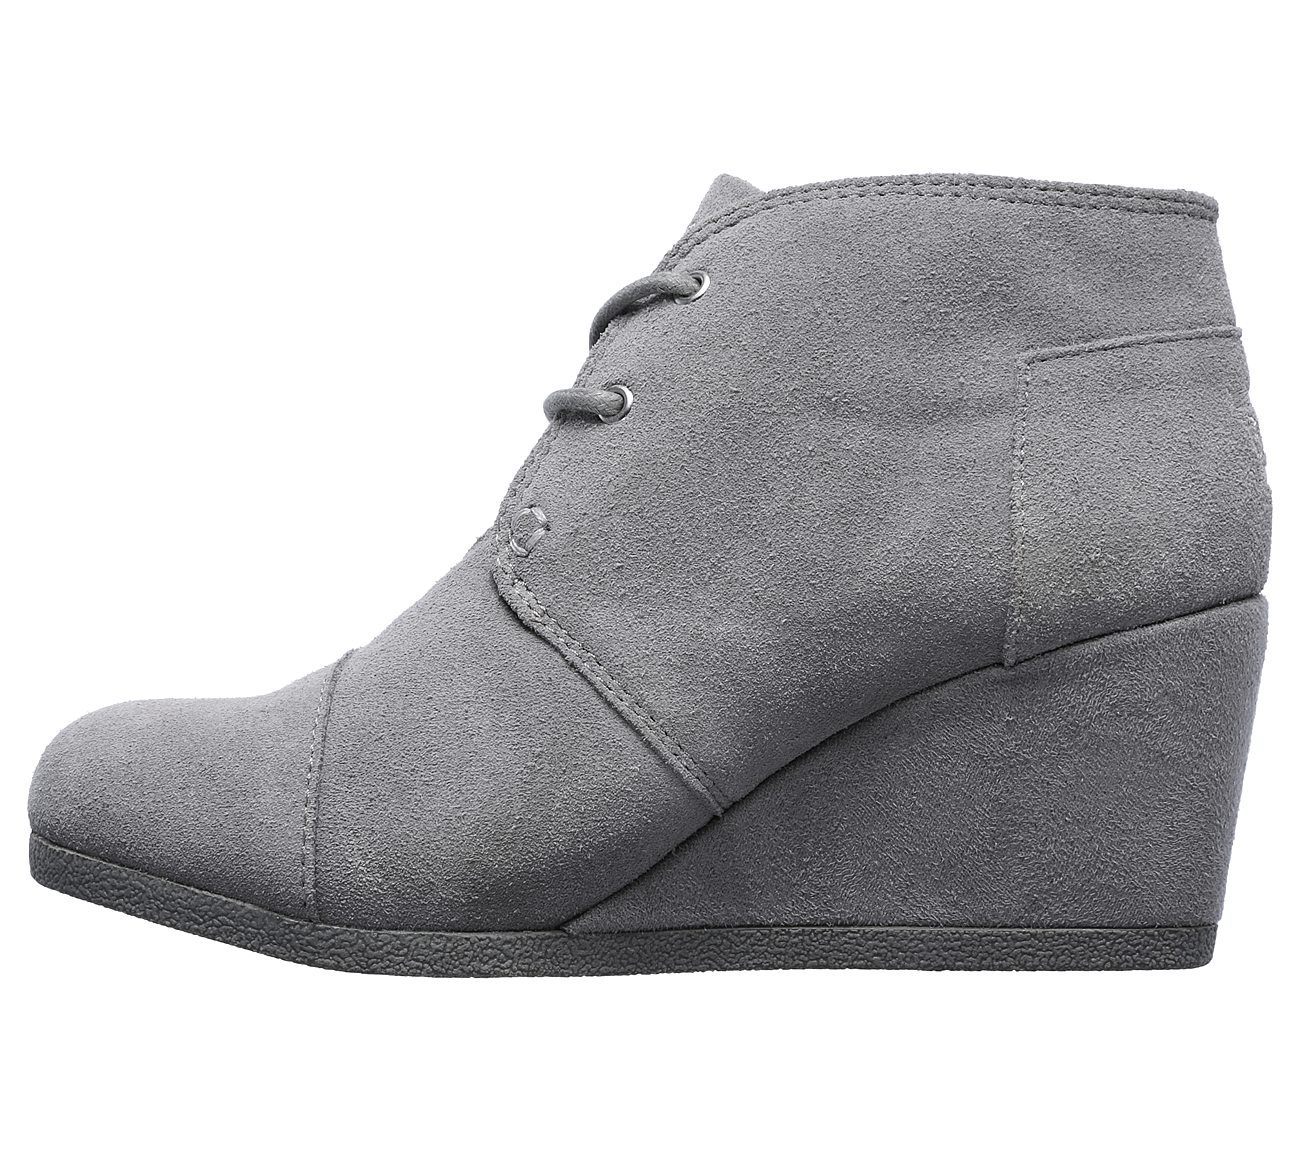 6e2ae199fc9 Buy SKECHERS Bobs High Notes - Behold BOBS Shoes only  95.00